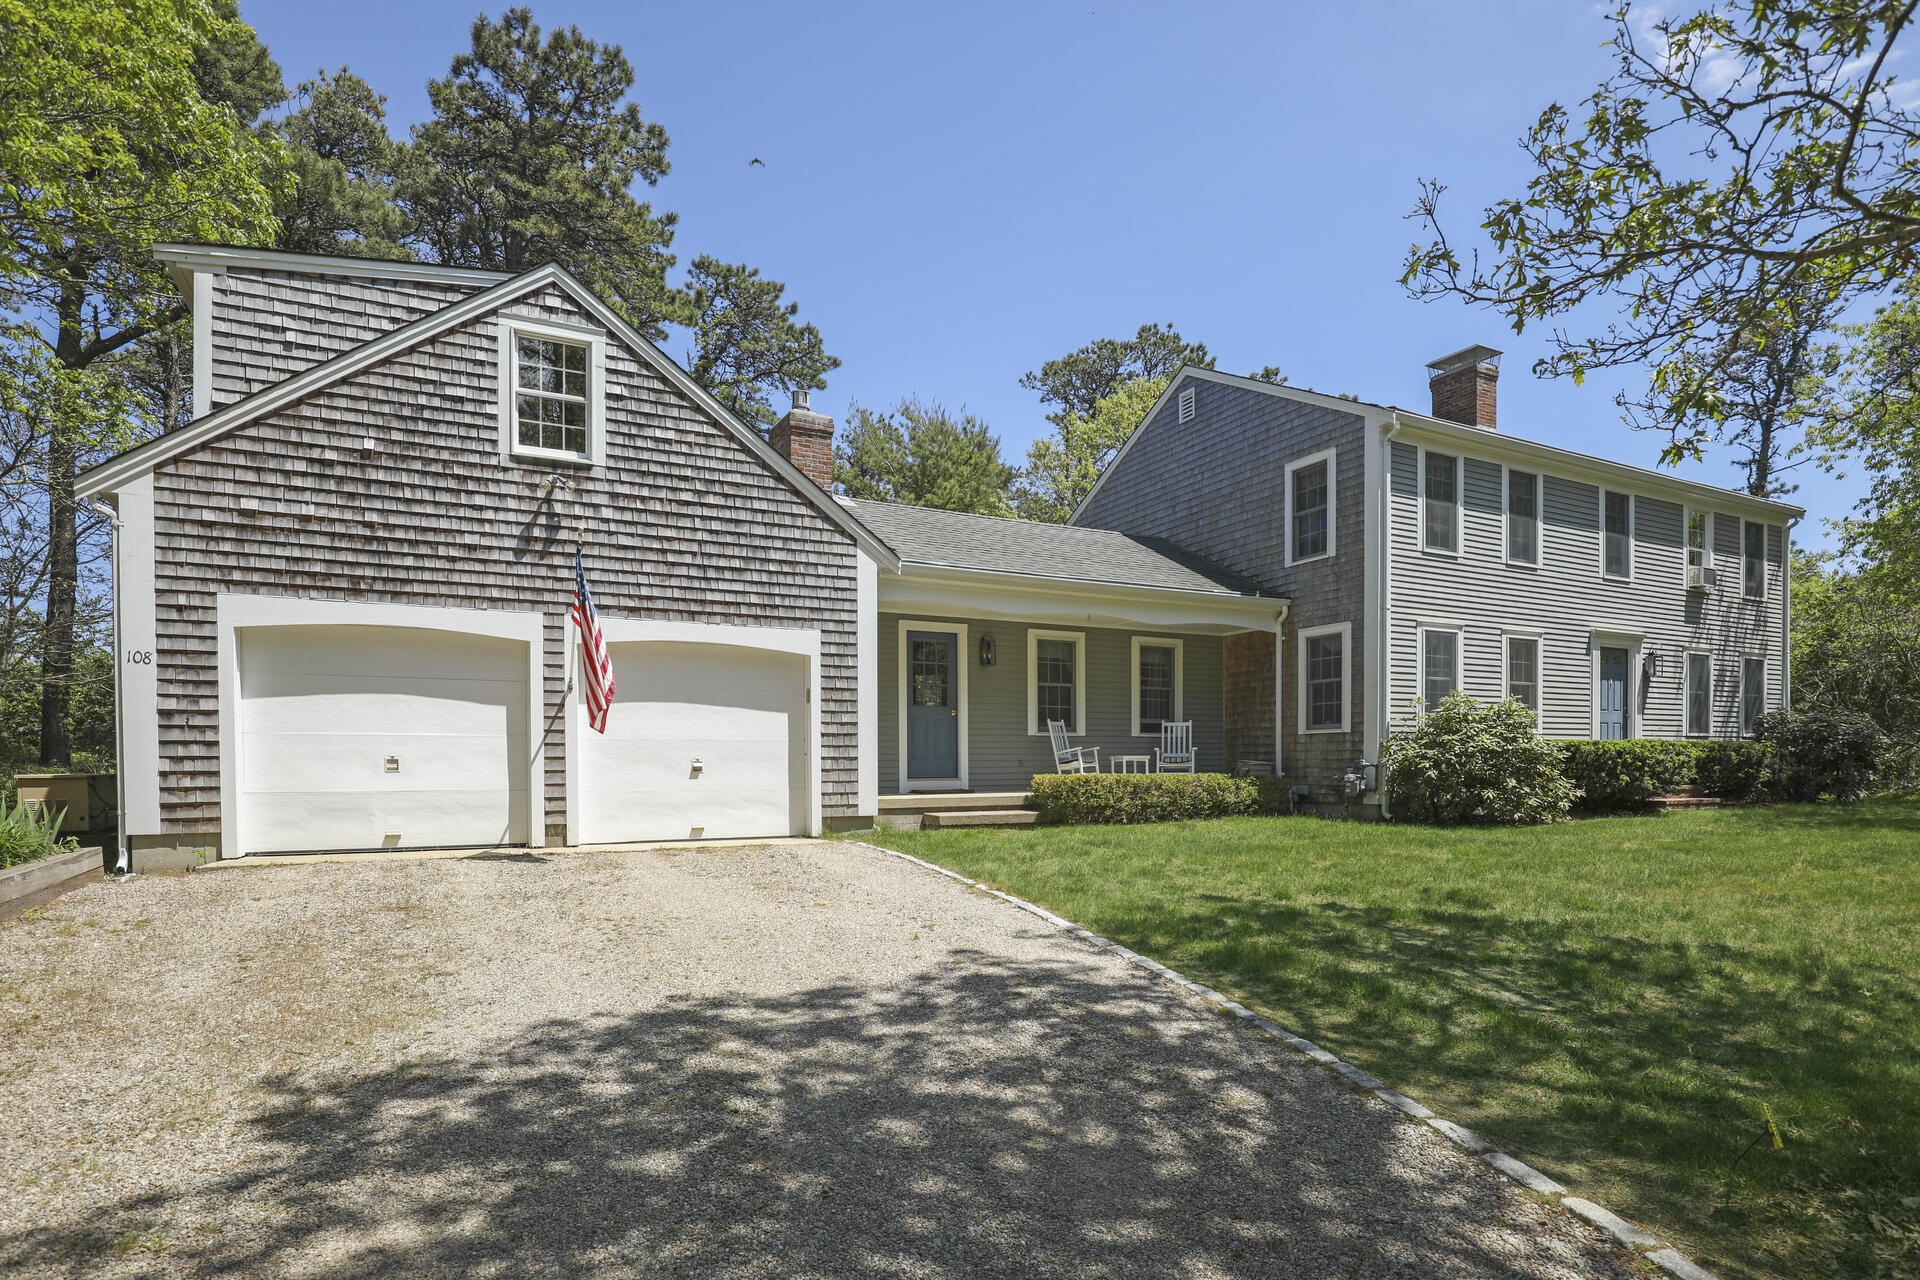 108 Whidah Road, North Chatham MA, 02650 sales details